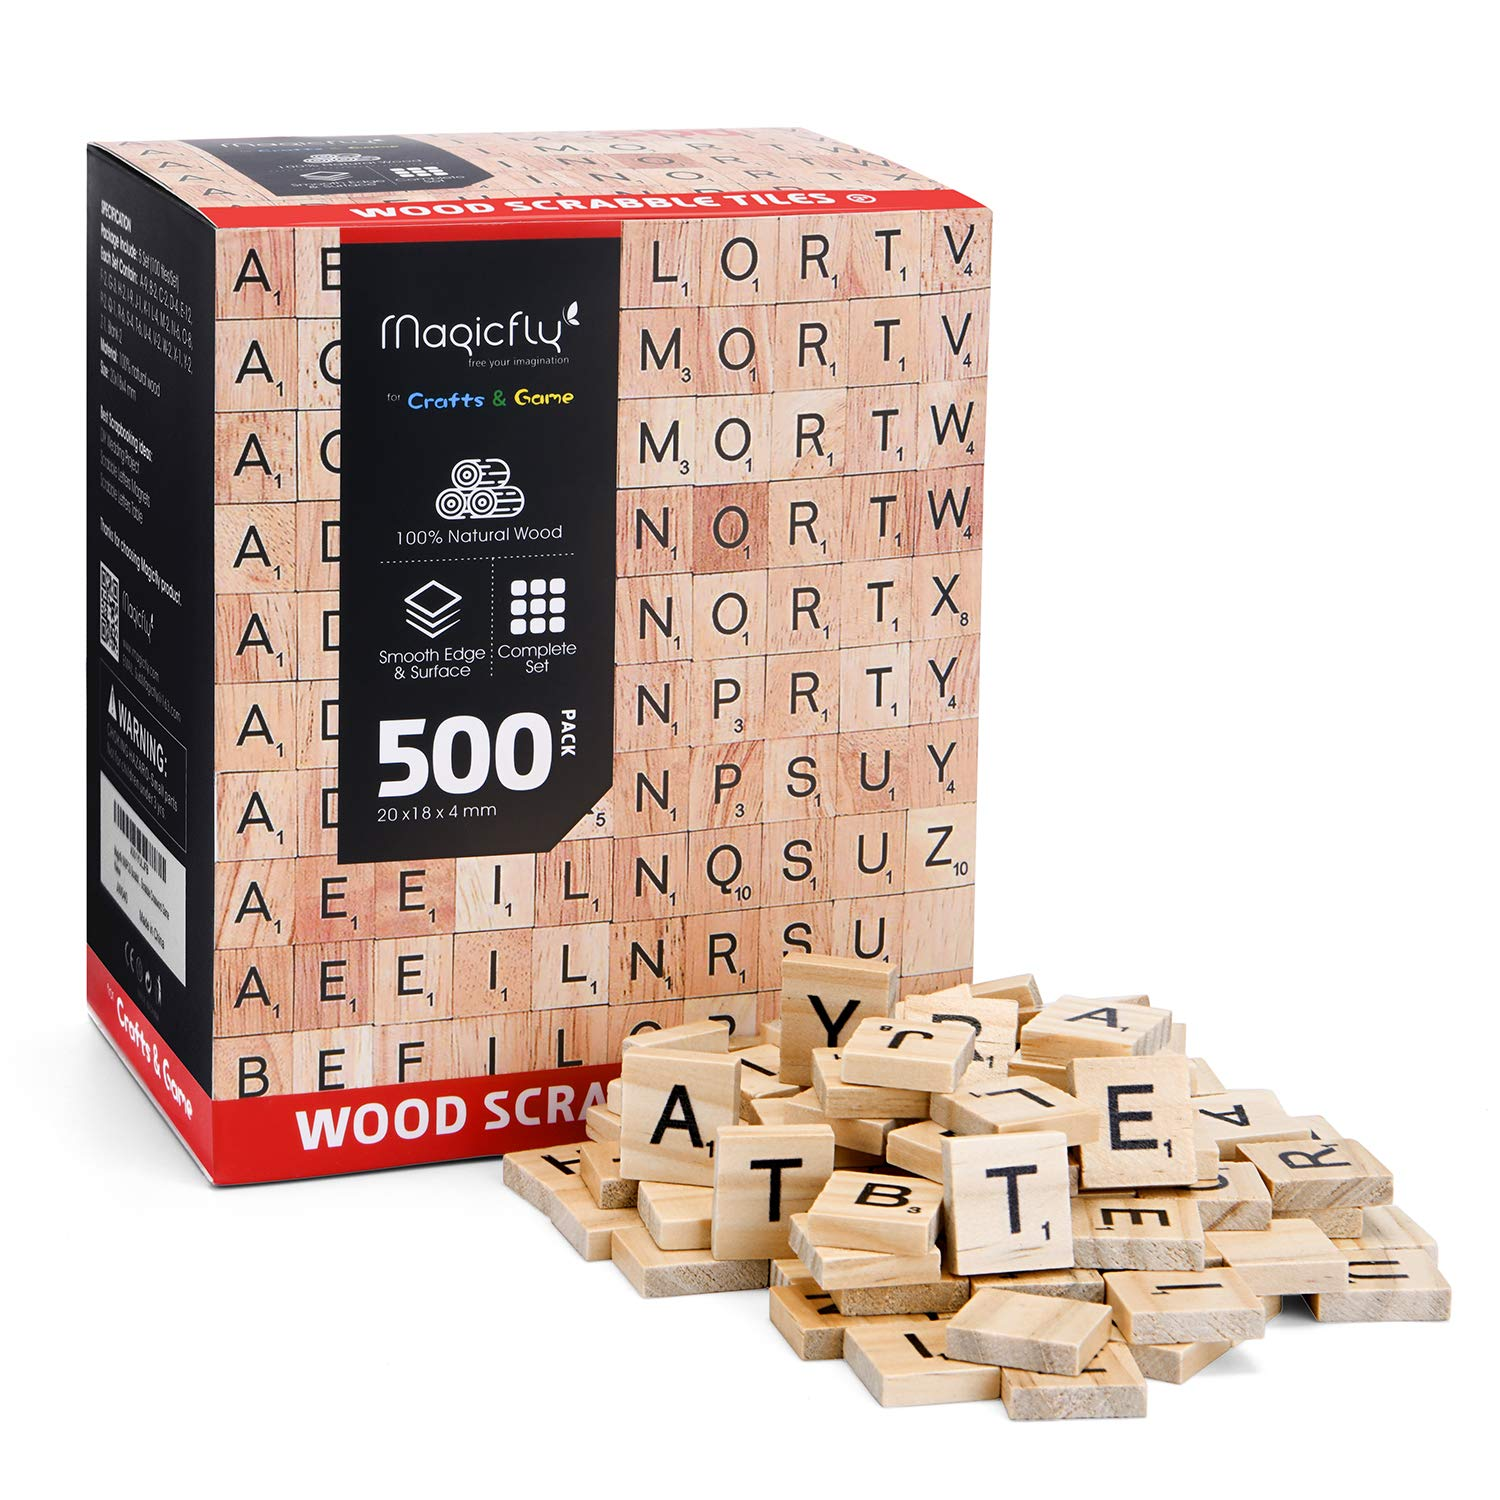 Magicfly 500Pcs Scrabble Tiles, Wood Craft Scrabble Letters Word Tiles, A-Z for Wood Gift Decoration & Scrabble Crossword Game by Magicfly